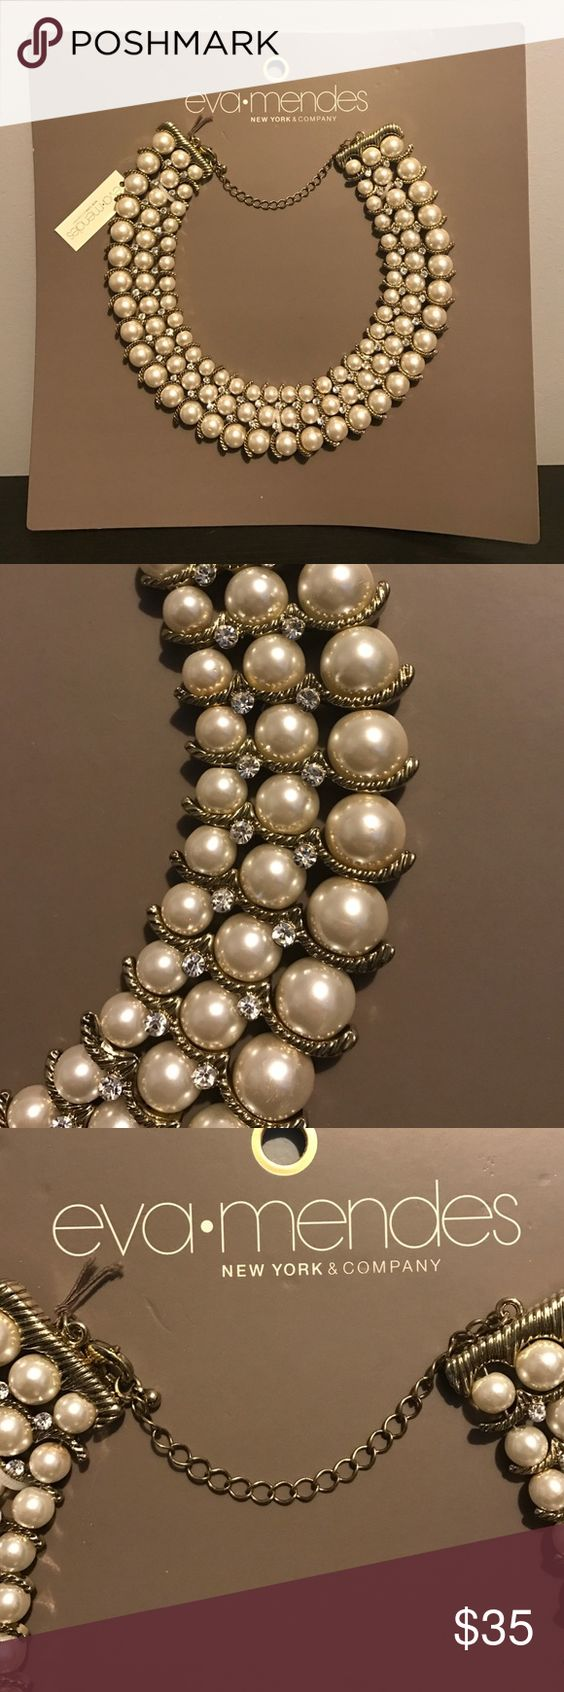 New York & Company Eva Mendes Pearl Necklace Classic necklace from the New York & Company Eva Mendes Collection! New with tags. Matching bracelet in separate auction! New York & Company Jewelry Necklaces